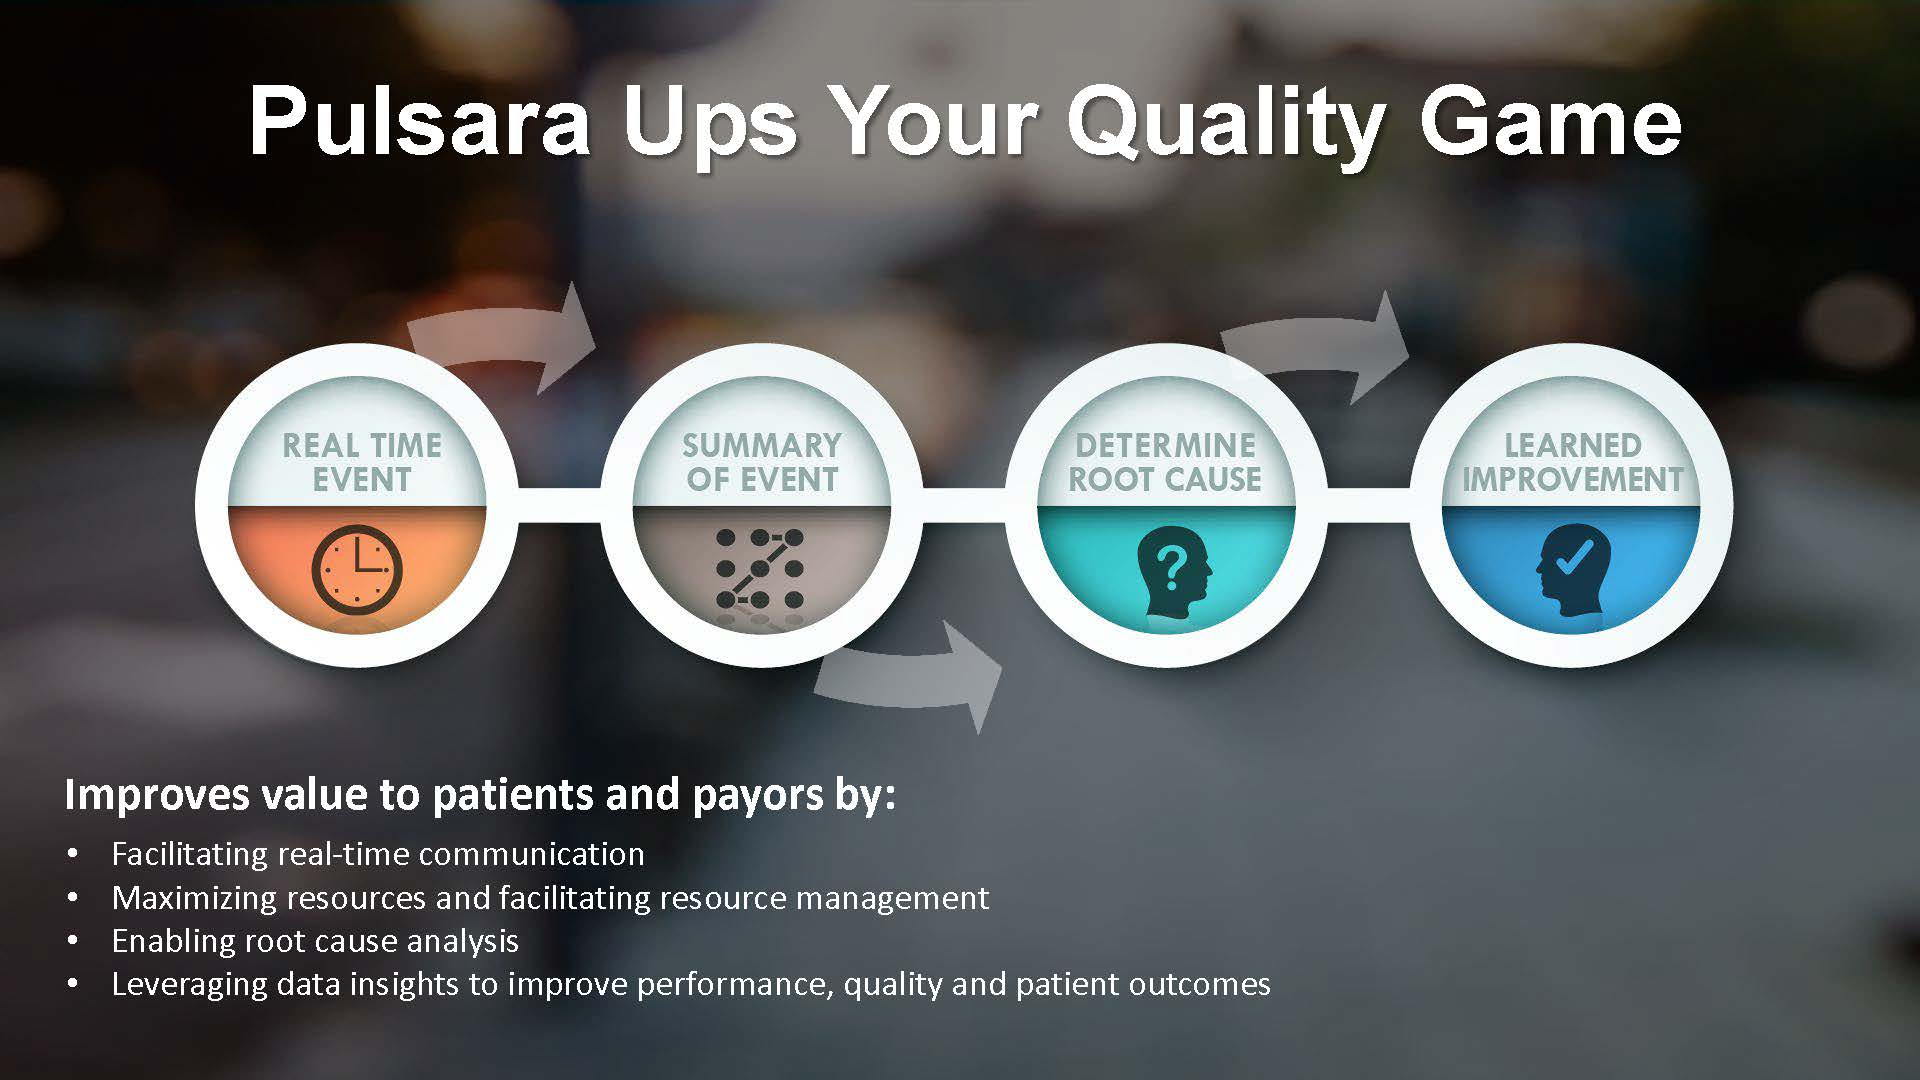 Pulsara Ups Your Quality Game - FINAL